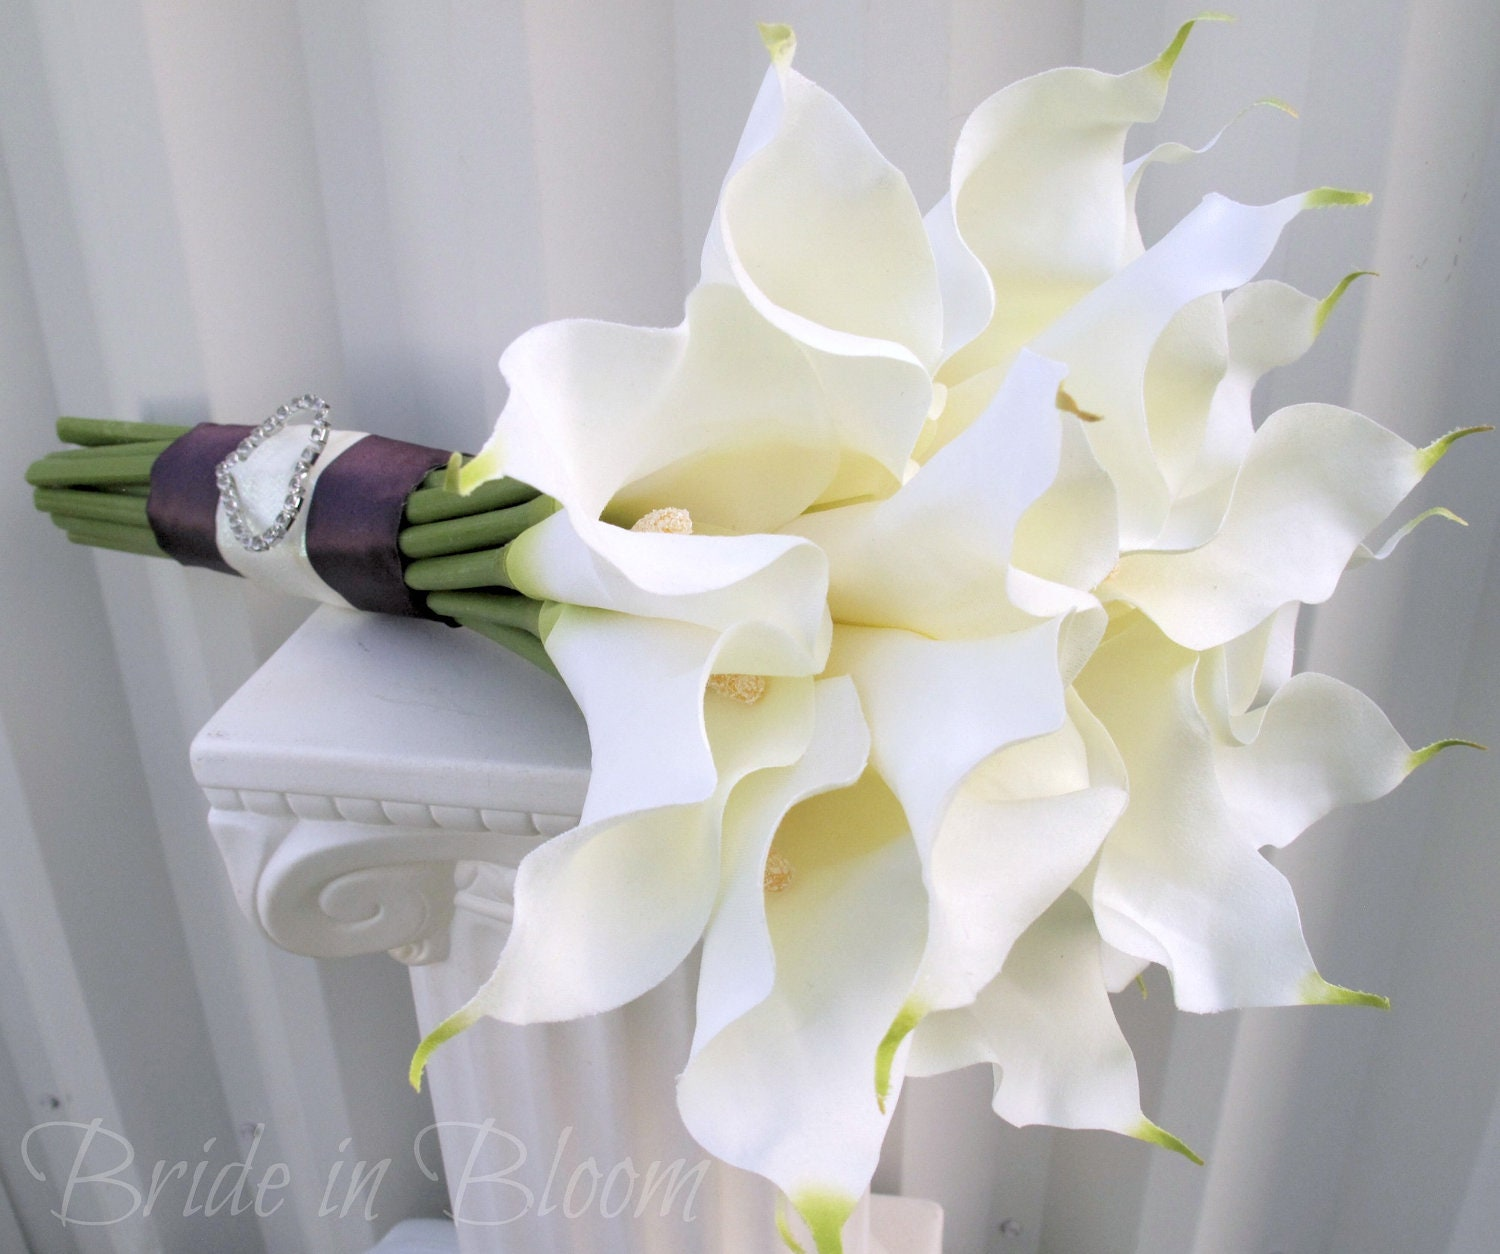 Wedding Flower Arrangements With Lilies : Items similar to wedding bouquet white cream calla lily bridal silk flowers on etsy